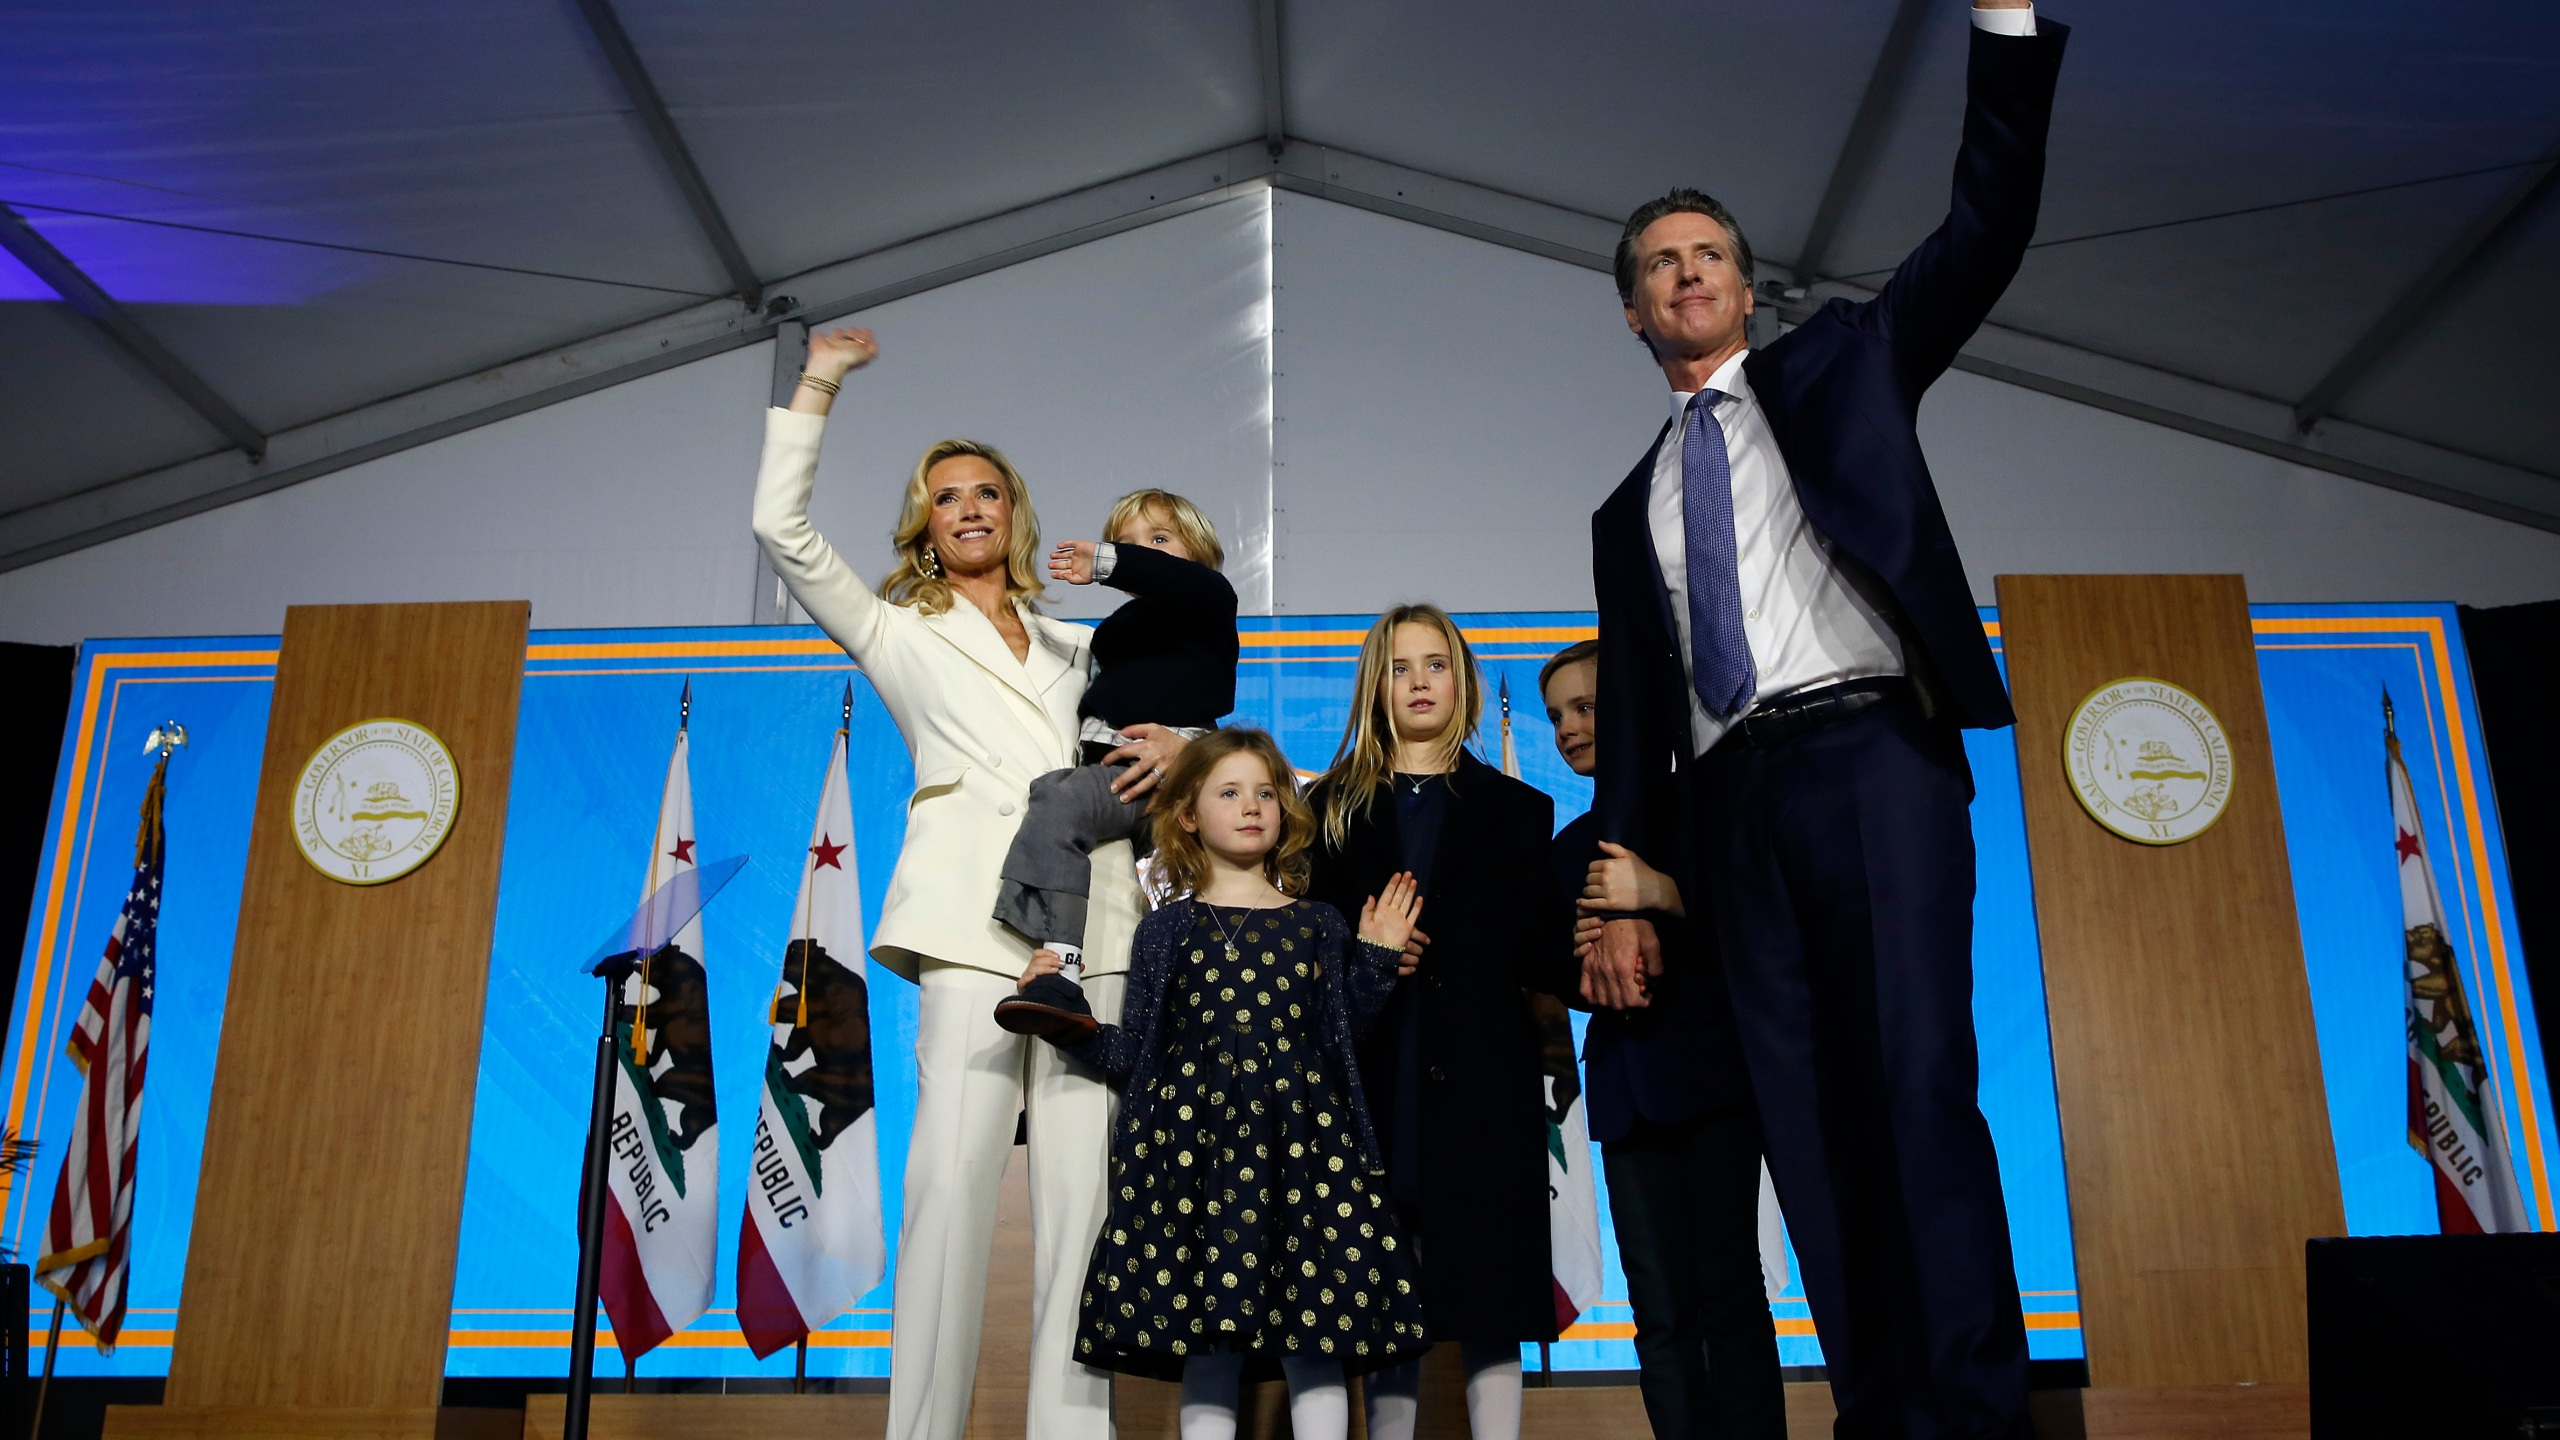 In this Jan. 7, 2019, file photo California Governor Gavin Newsom his wife, Jennifer Siebel Newsom, and their children wave after taking the oath office during his inauguration as 40th Governor of California, in Sacramento, Calif. Newsom's office said, Tuesday, July 27, 2021, that he pulled his children out of summer camp after children at the camp weren't wearing face masks, a violation of state policy. (AP Photo/Rich Pedroncelli, File)